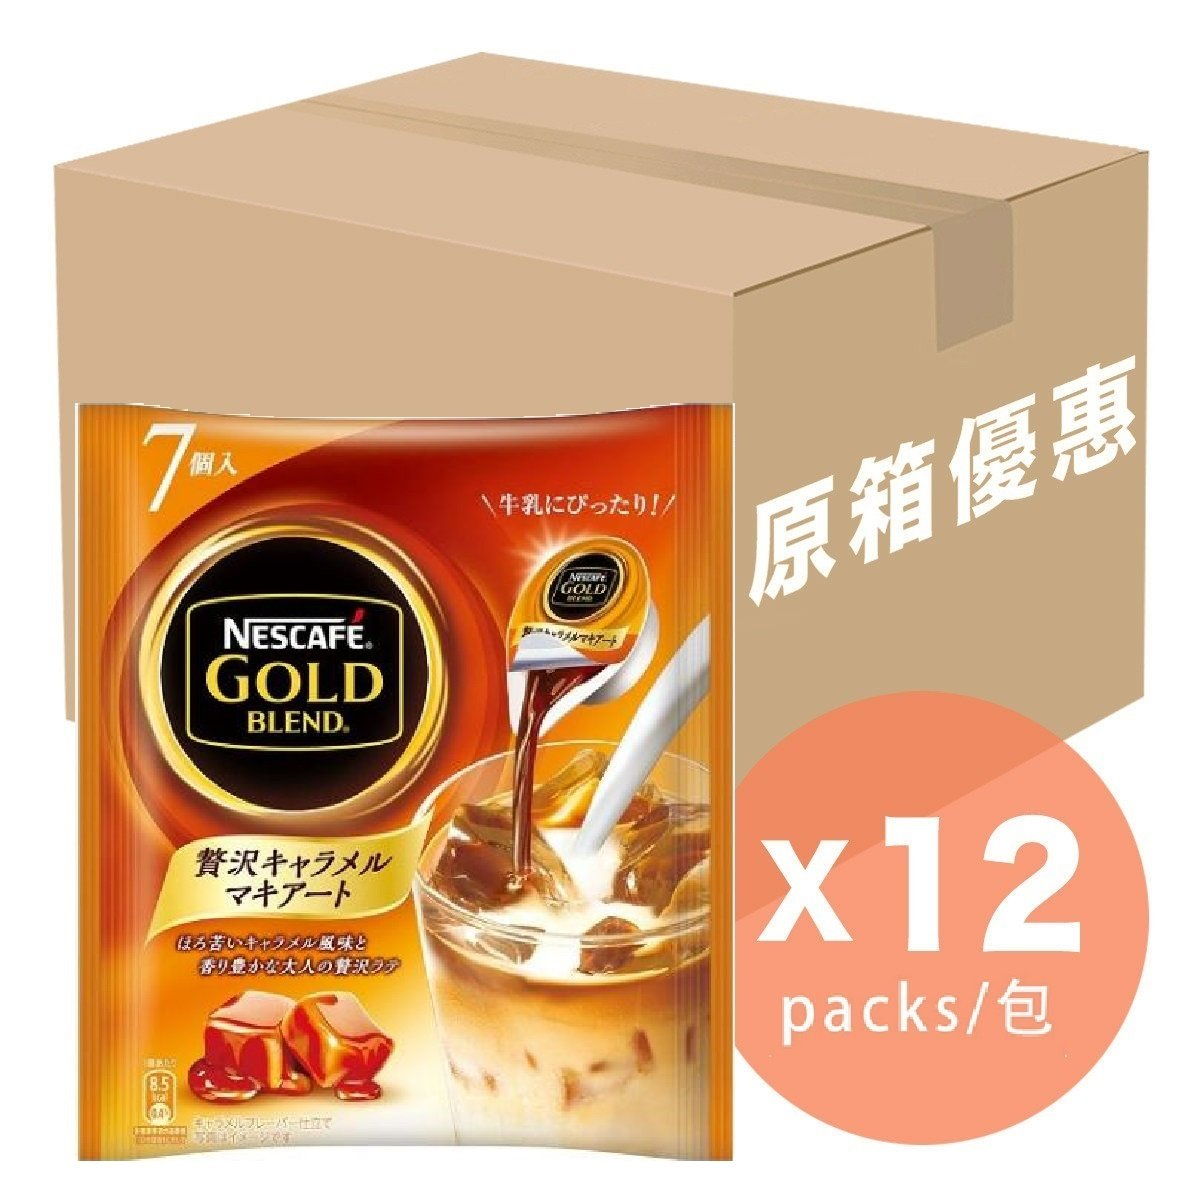 [Full Case] Japanese Import Caramel Macchiato Liquid Capsule Potion 7pcs x 12 packs